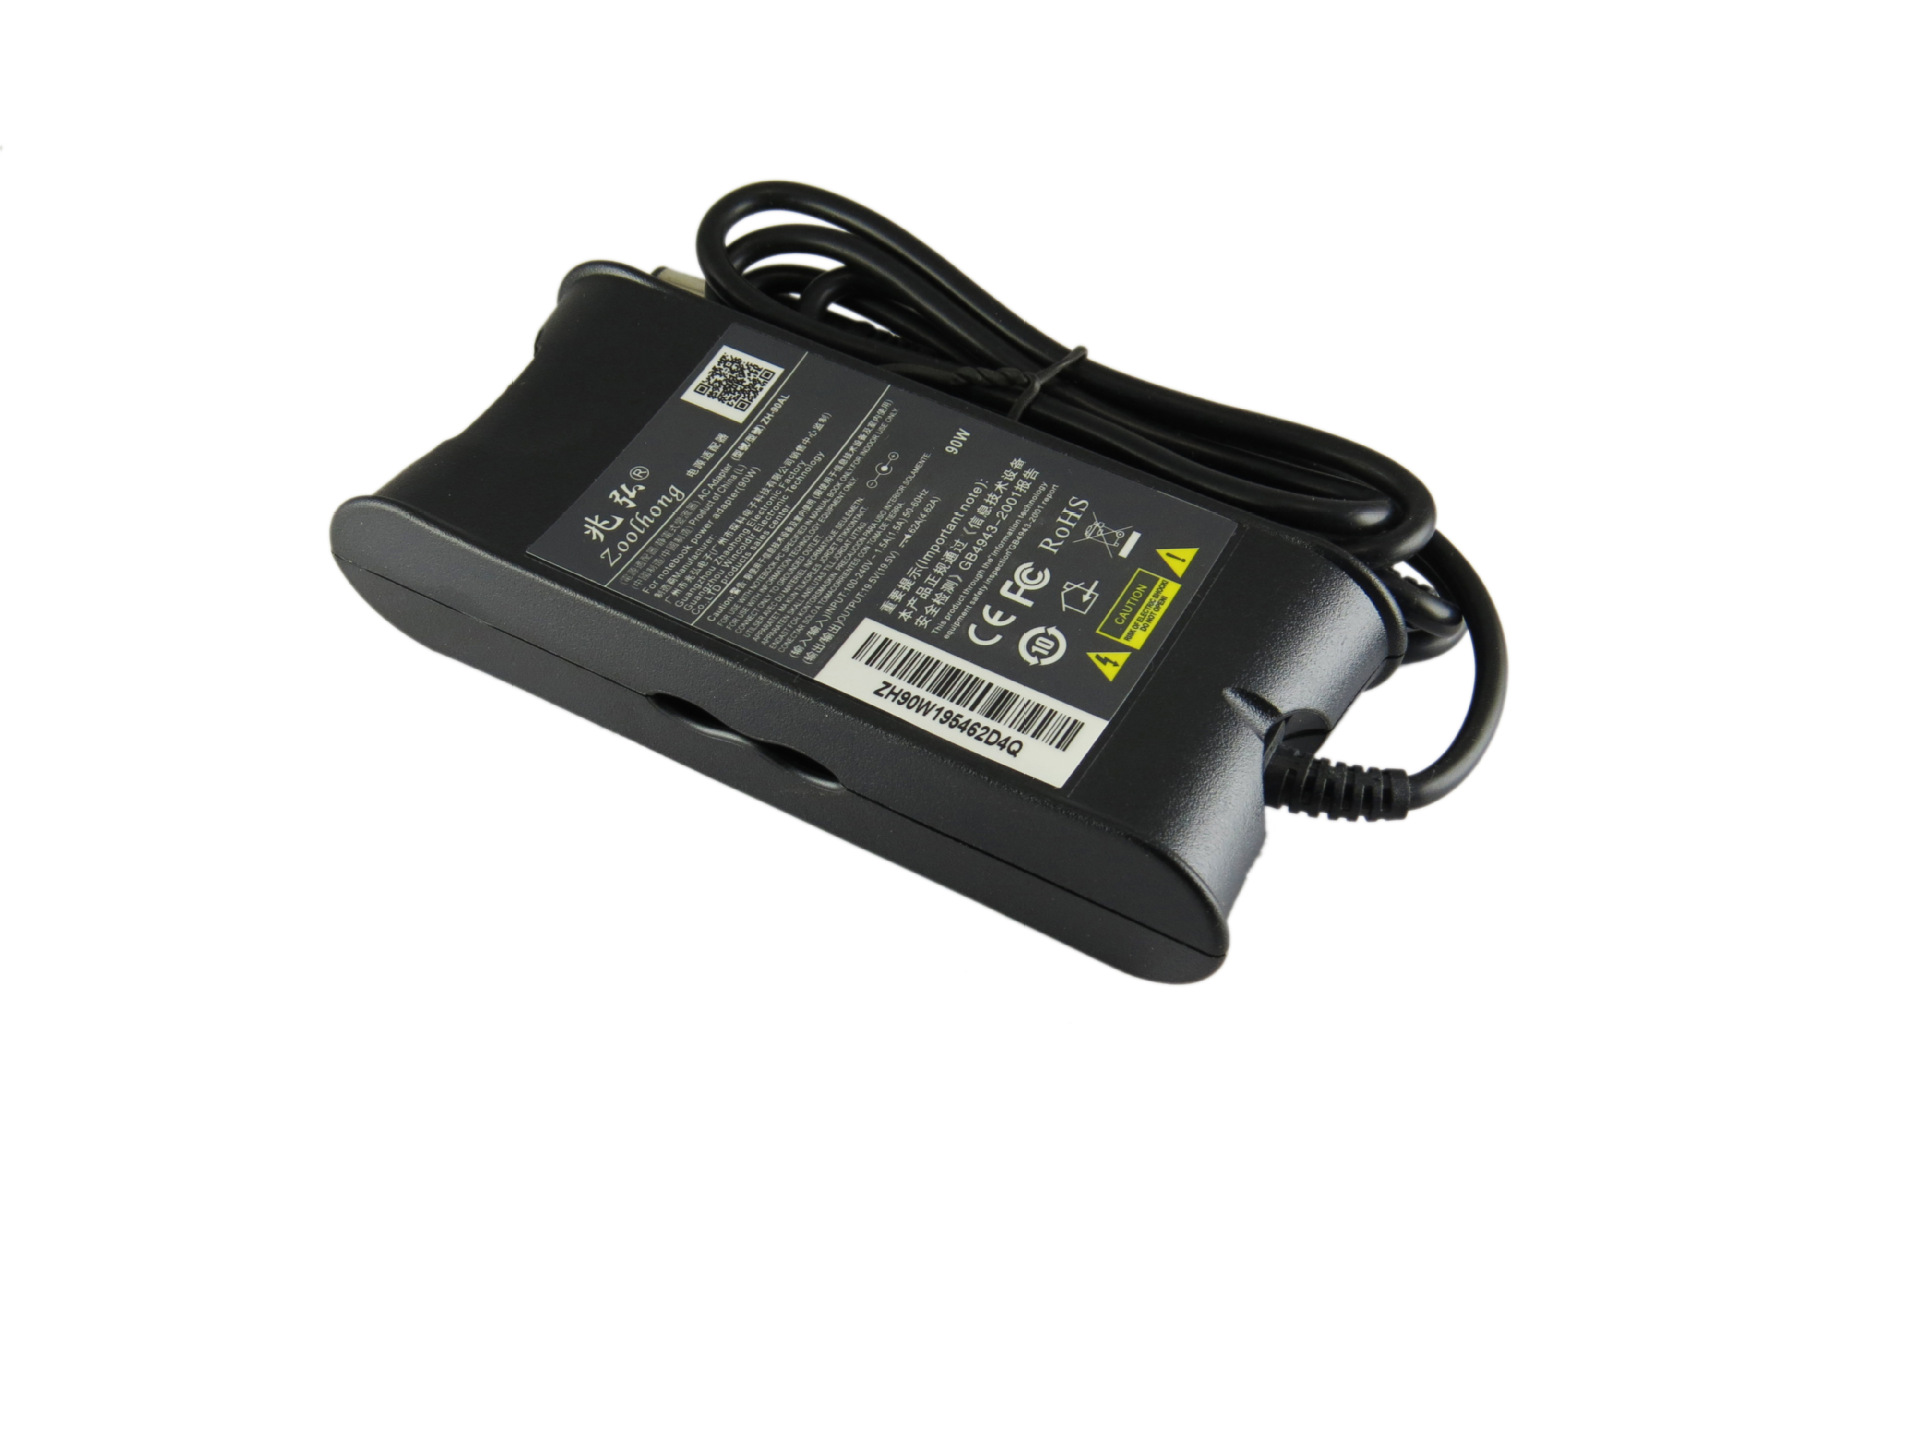 19 5V 3 34A 65W AC Laptop Power Adapter Charger For DELL Latitude D500 D505 D510 D520 D530 D531 D600 D610 D620 7 4mm 5 0mm in Laptop Adapter from Computer Office